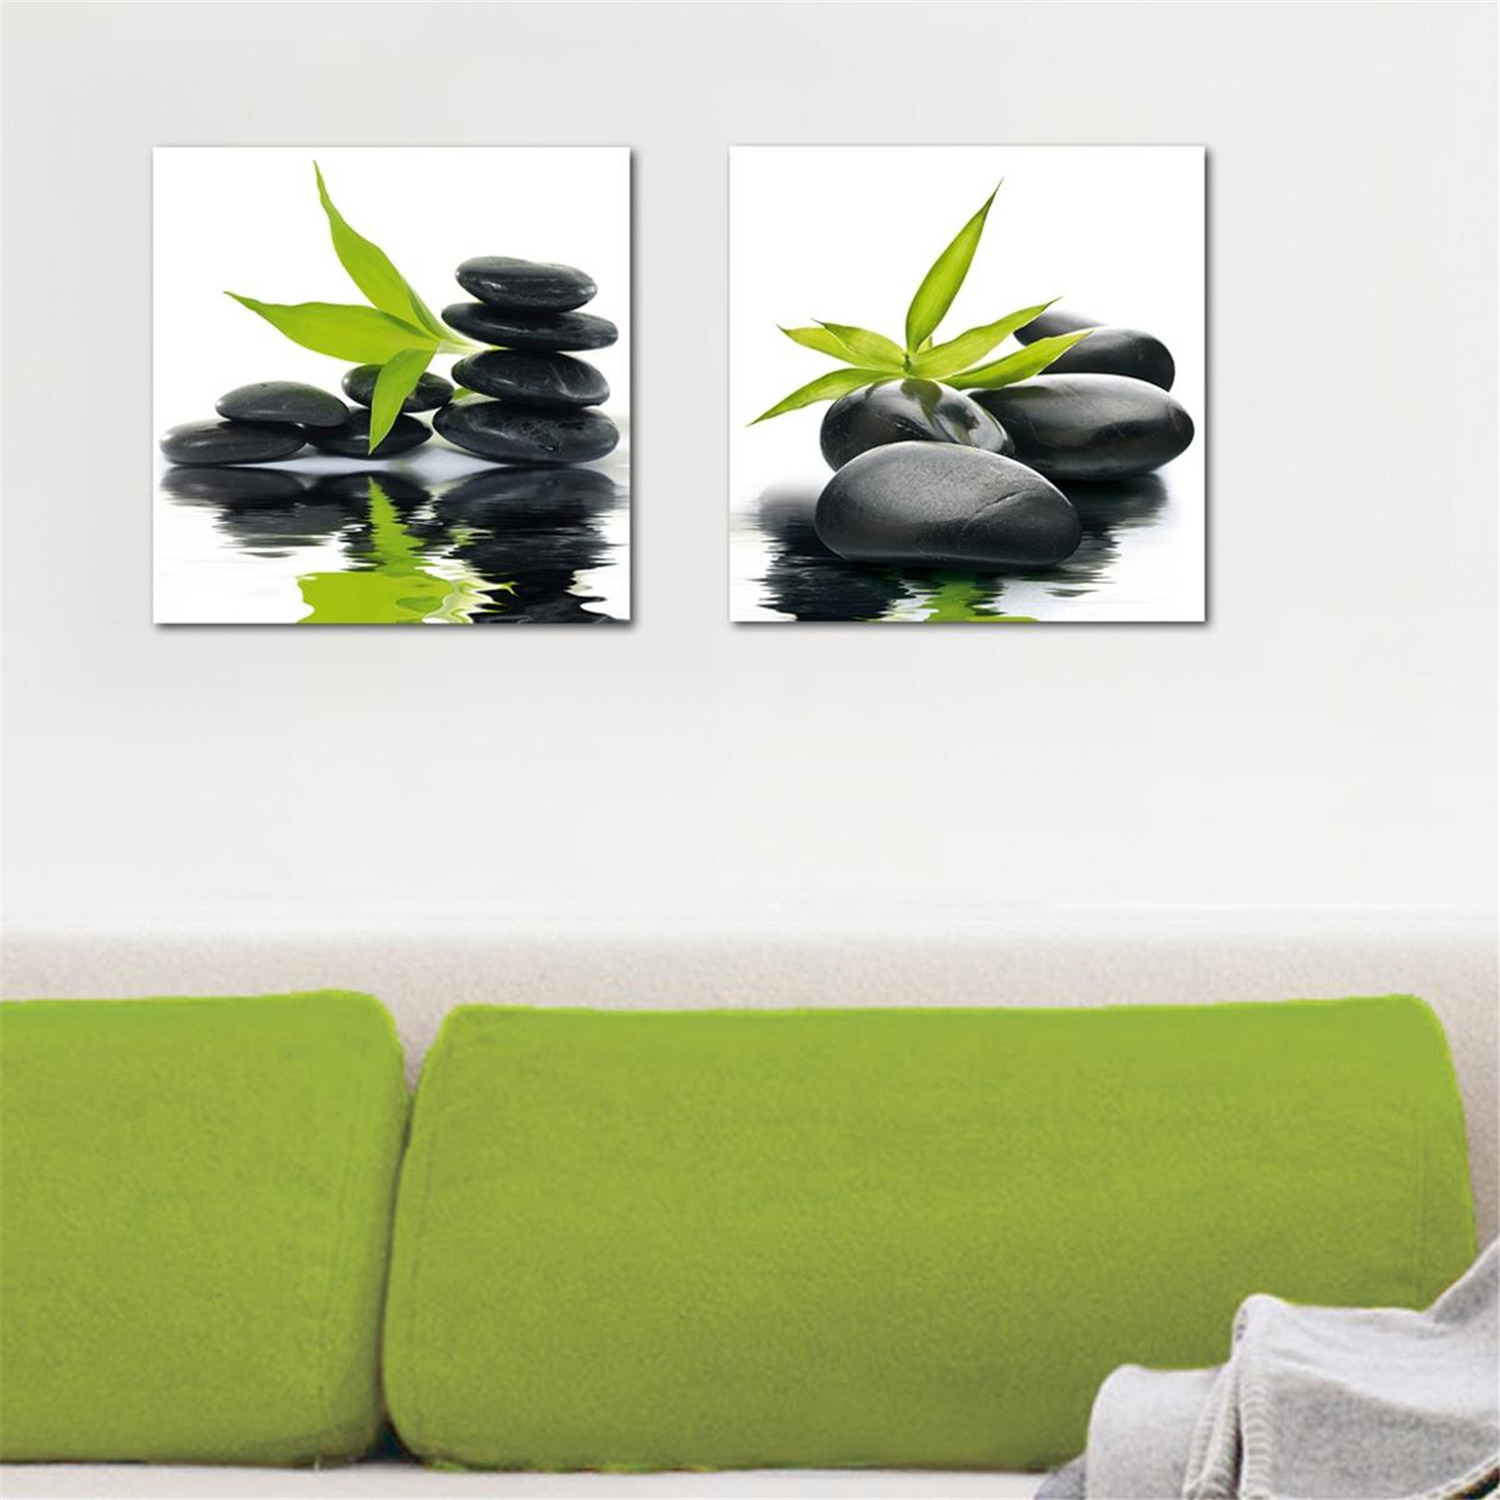 Deco glass wall decor art on glass zen impression for Deco decorations